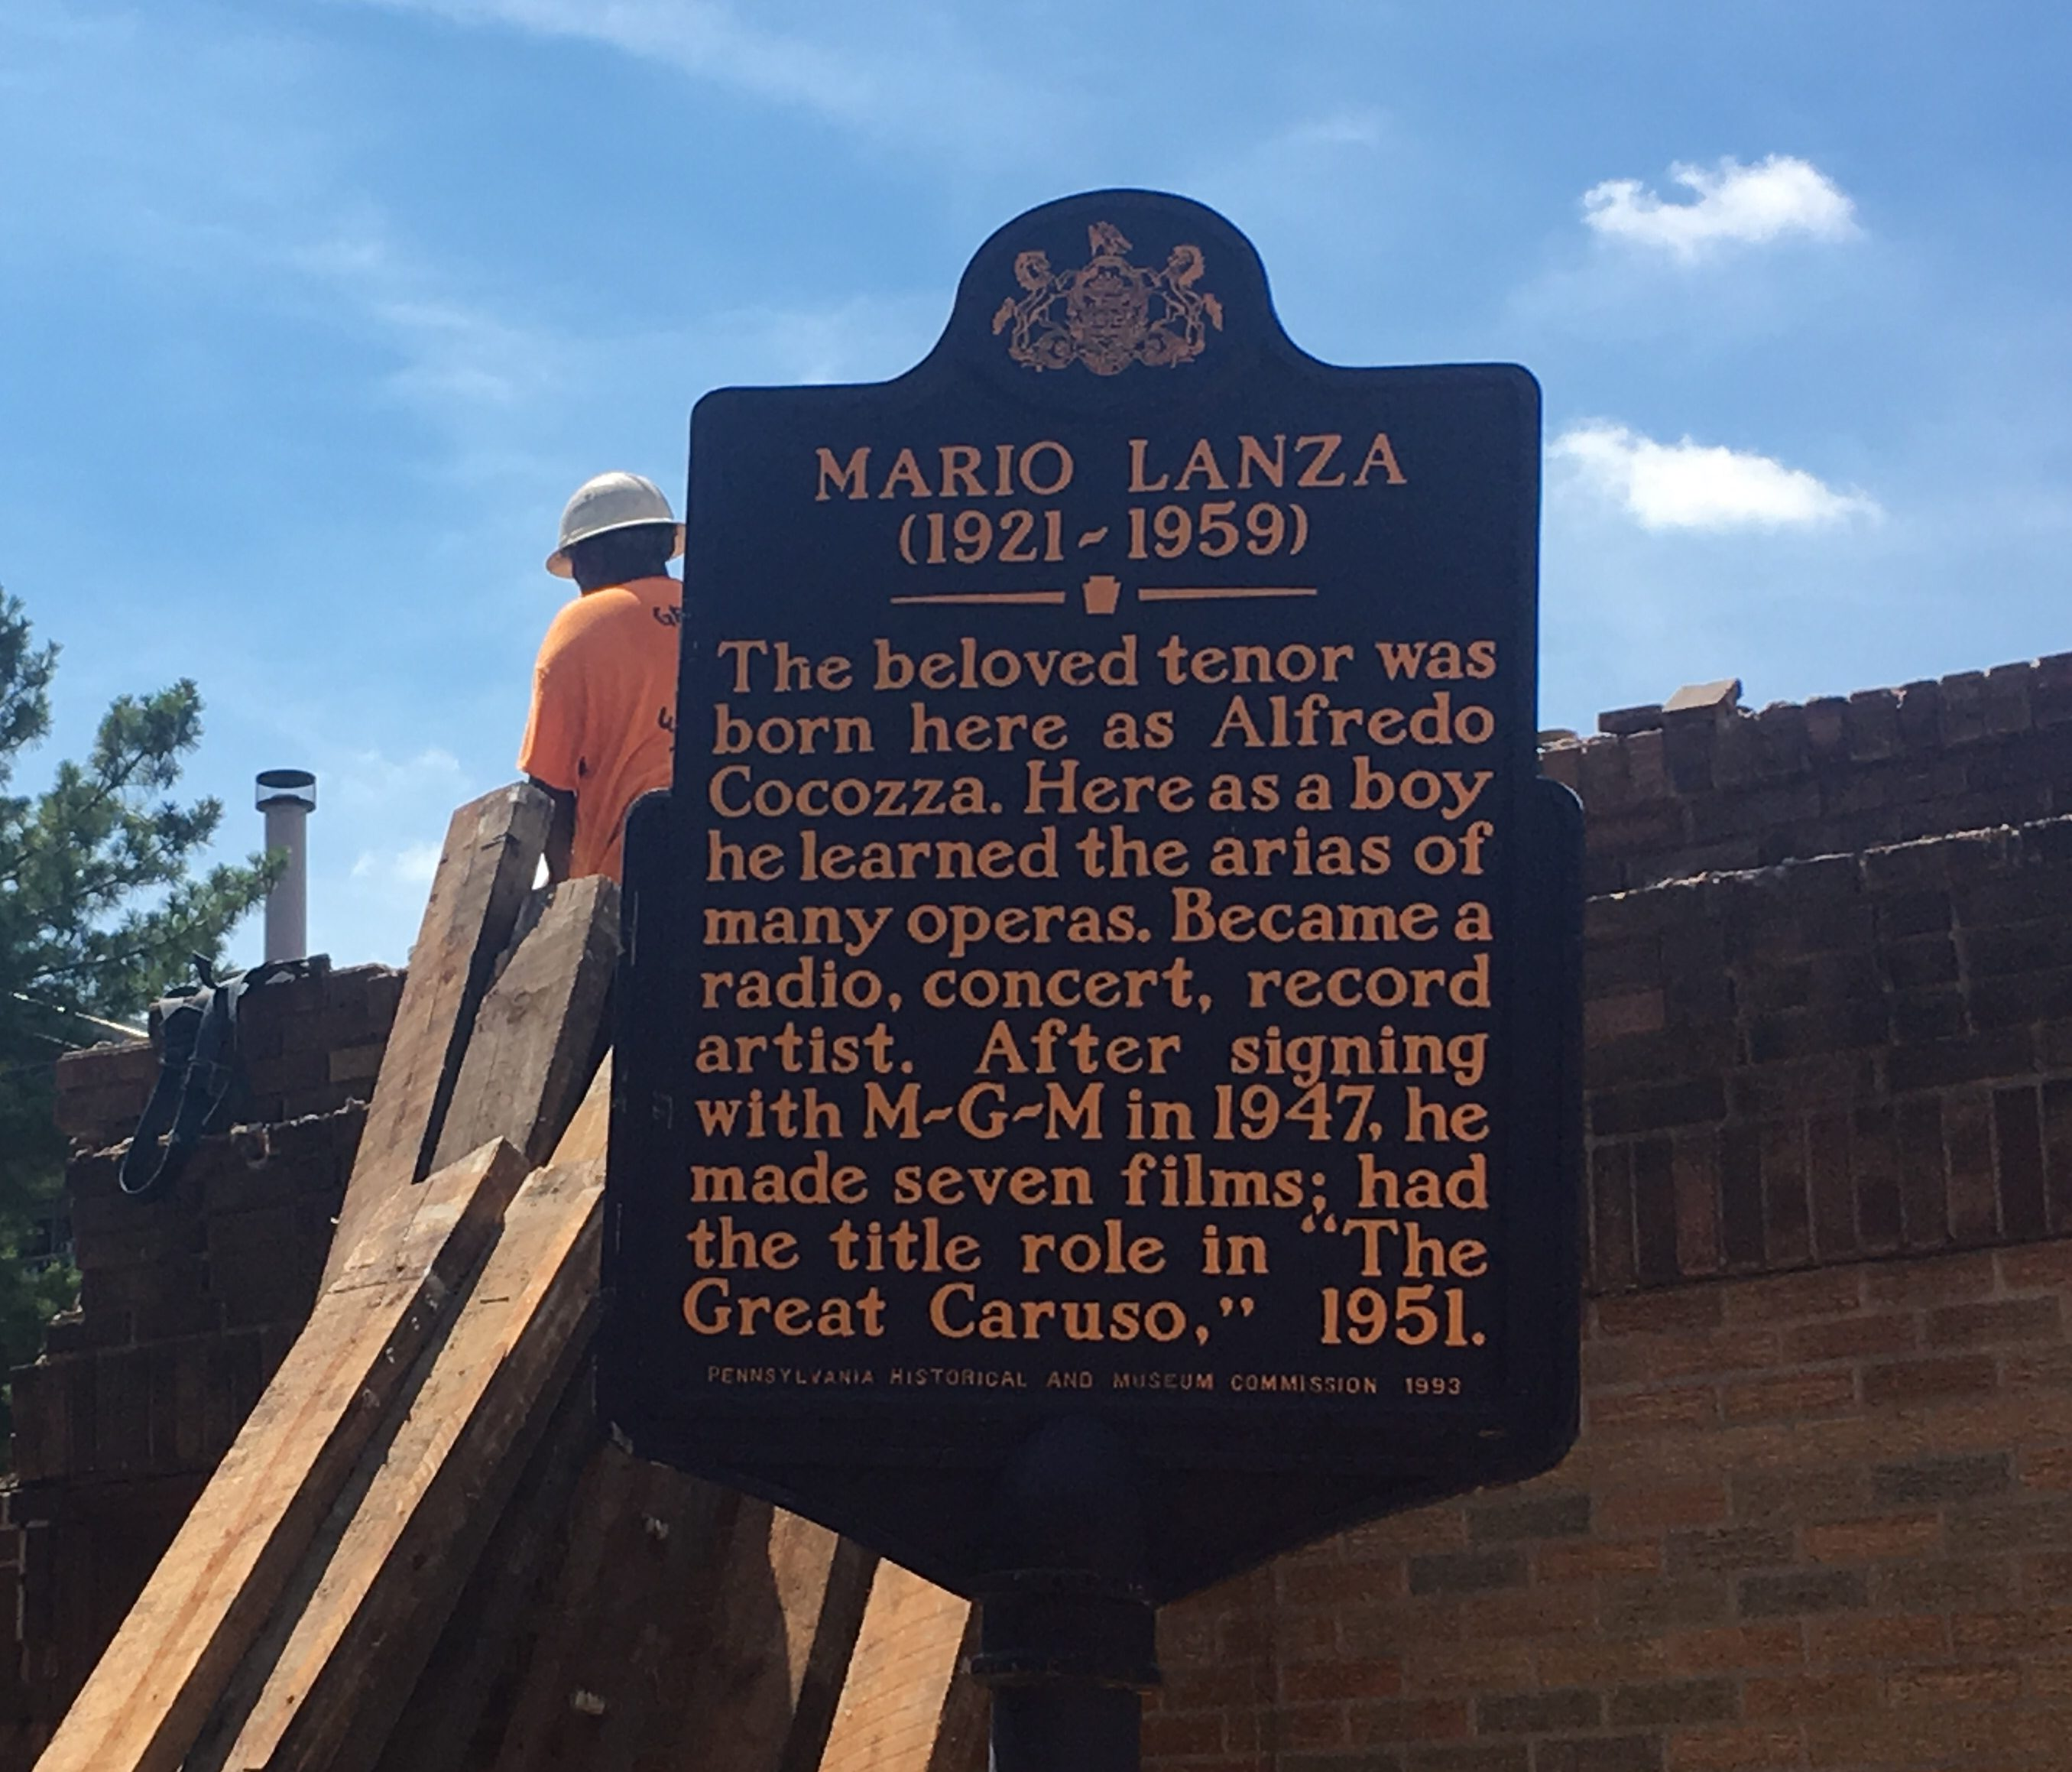 The historical marker at the home of Mario Lanza